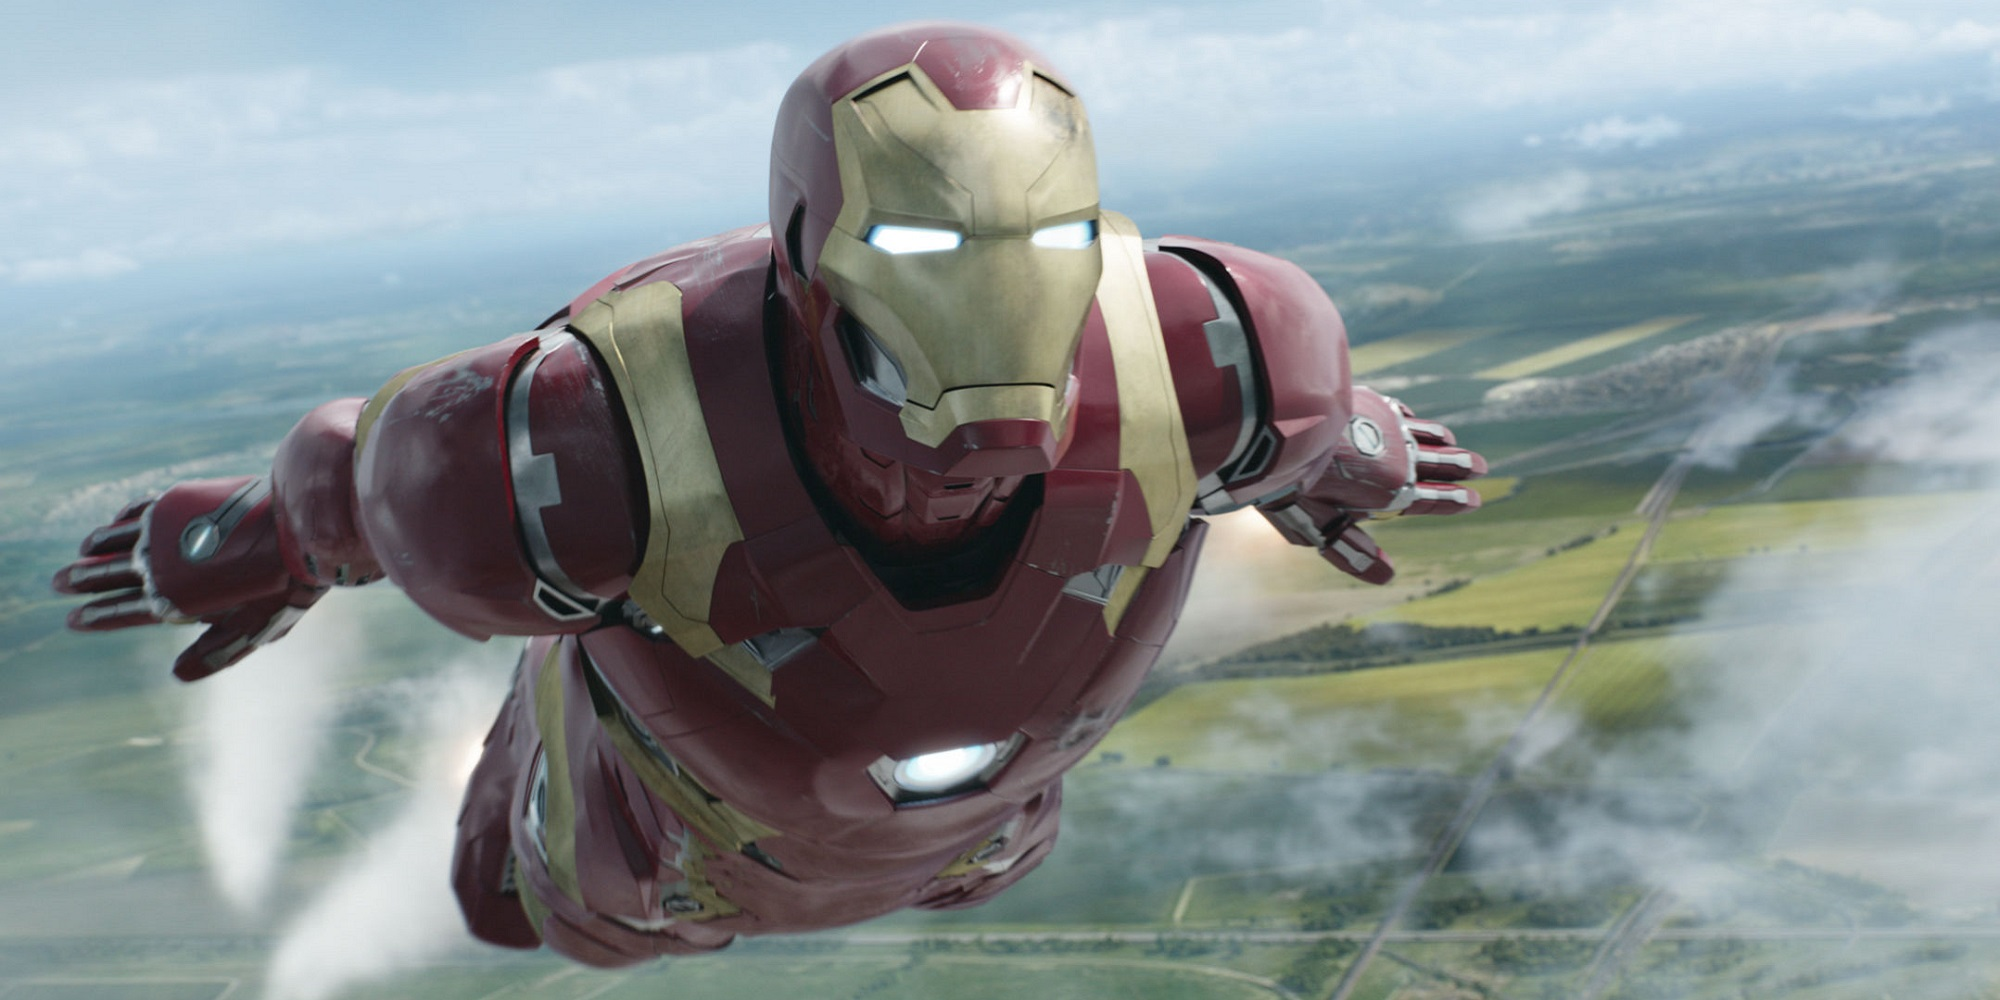 There's a new Iron Man ride at Disneyland and we want to ride it like, yesterday